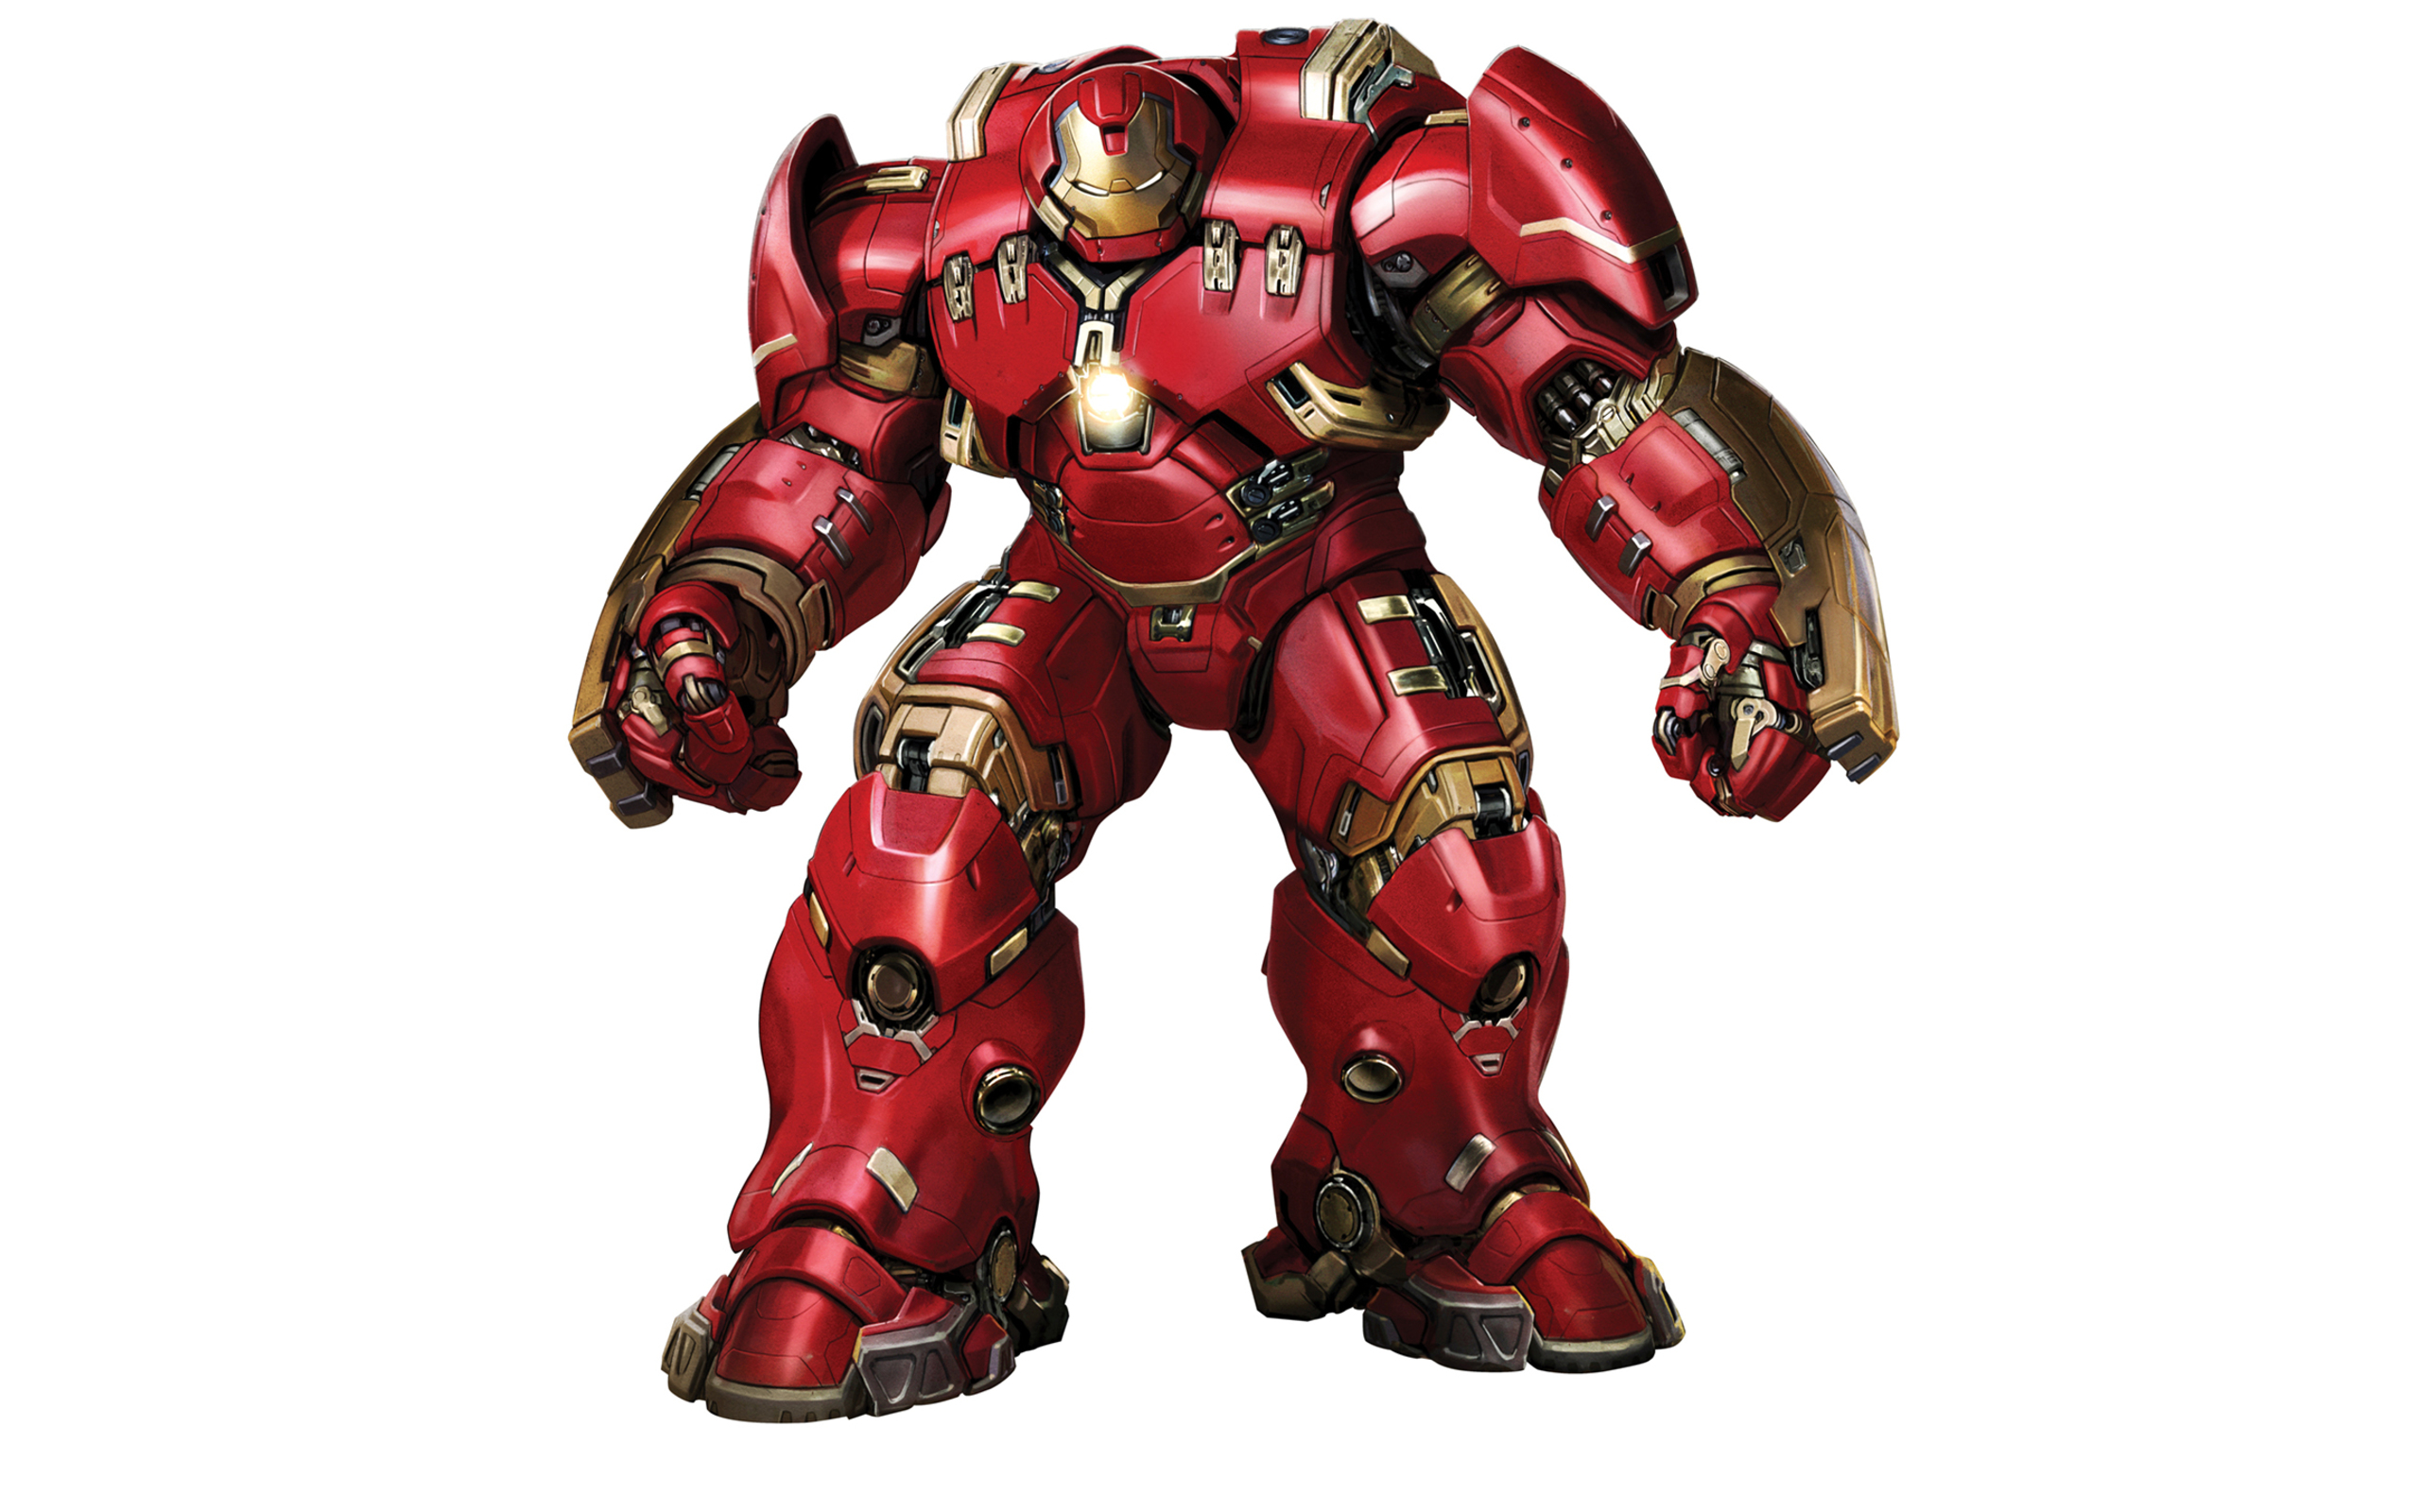 hulkbuster-suit-artwork-lu.jpg